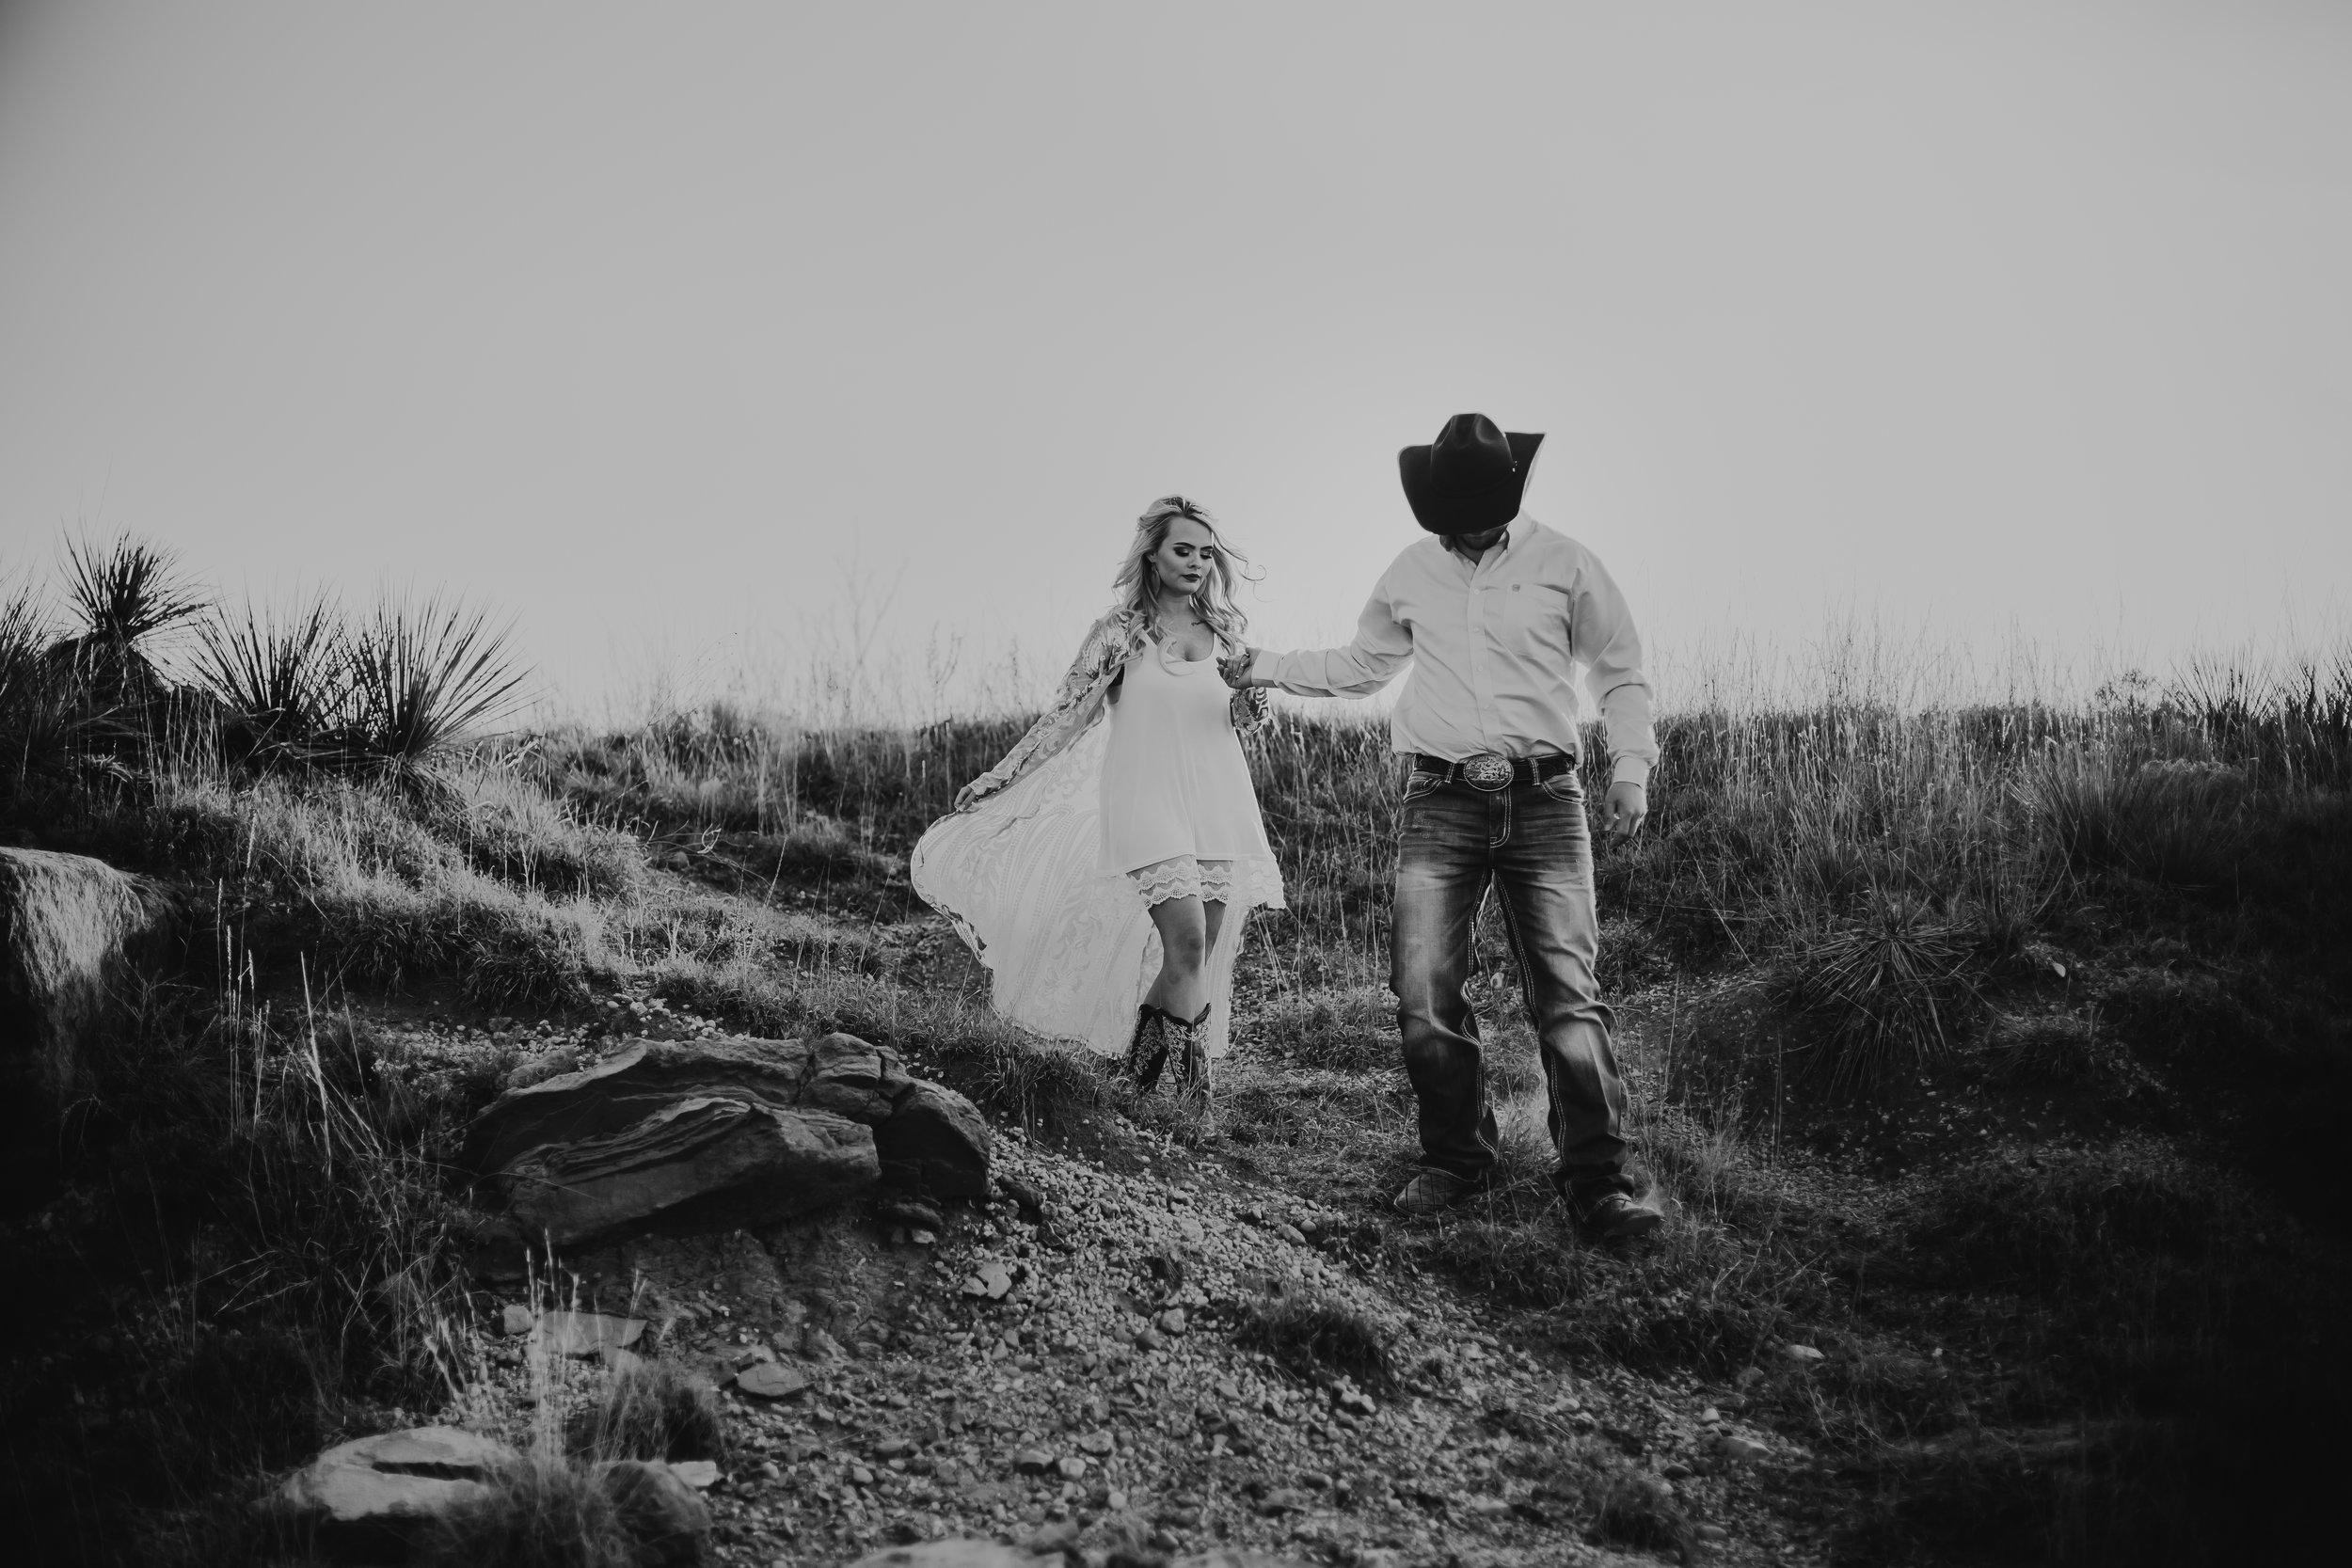 Groom to be leads his fiance down a path with photo in black and white #engagementphotos #engaged #personality #amarillotexas #engagementphotographer #lifestylephotos #amarillophotographer #locationchoice #texasengagementphotos #engagment #tealawardphotography #westernstyle